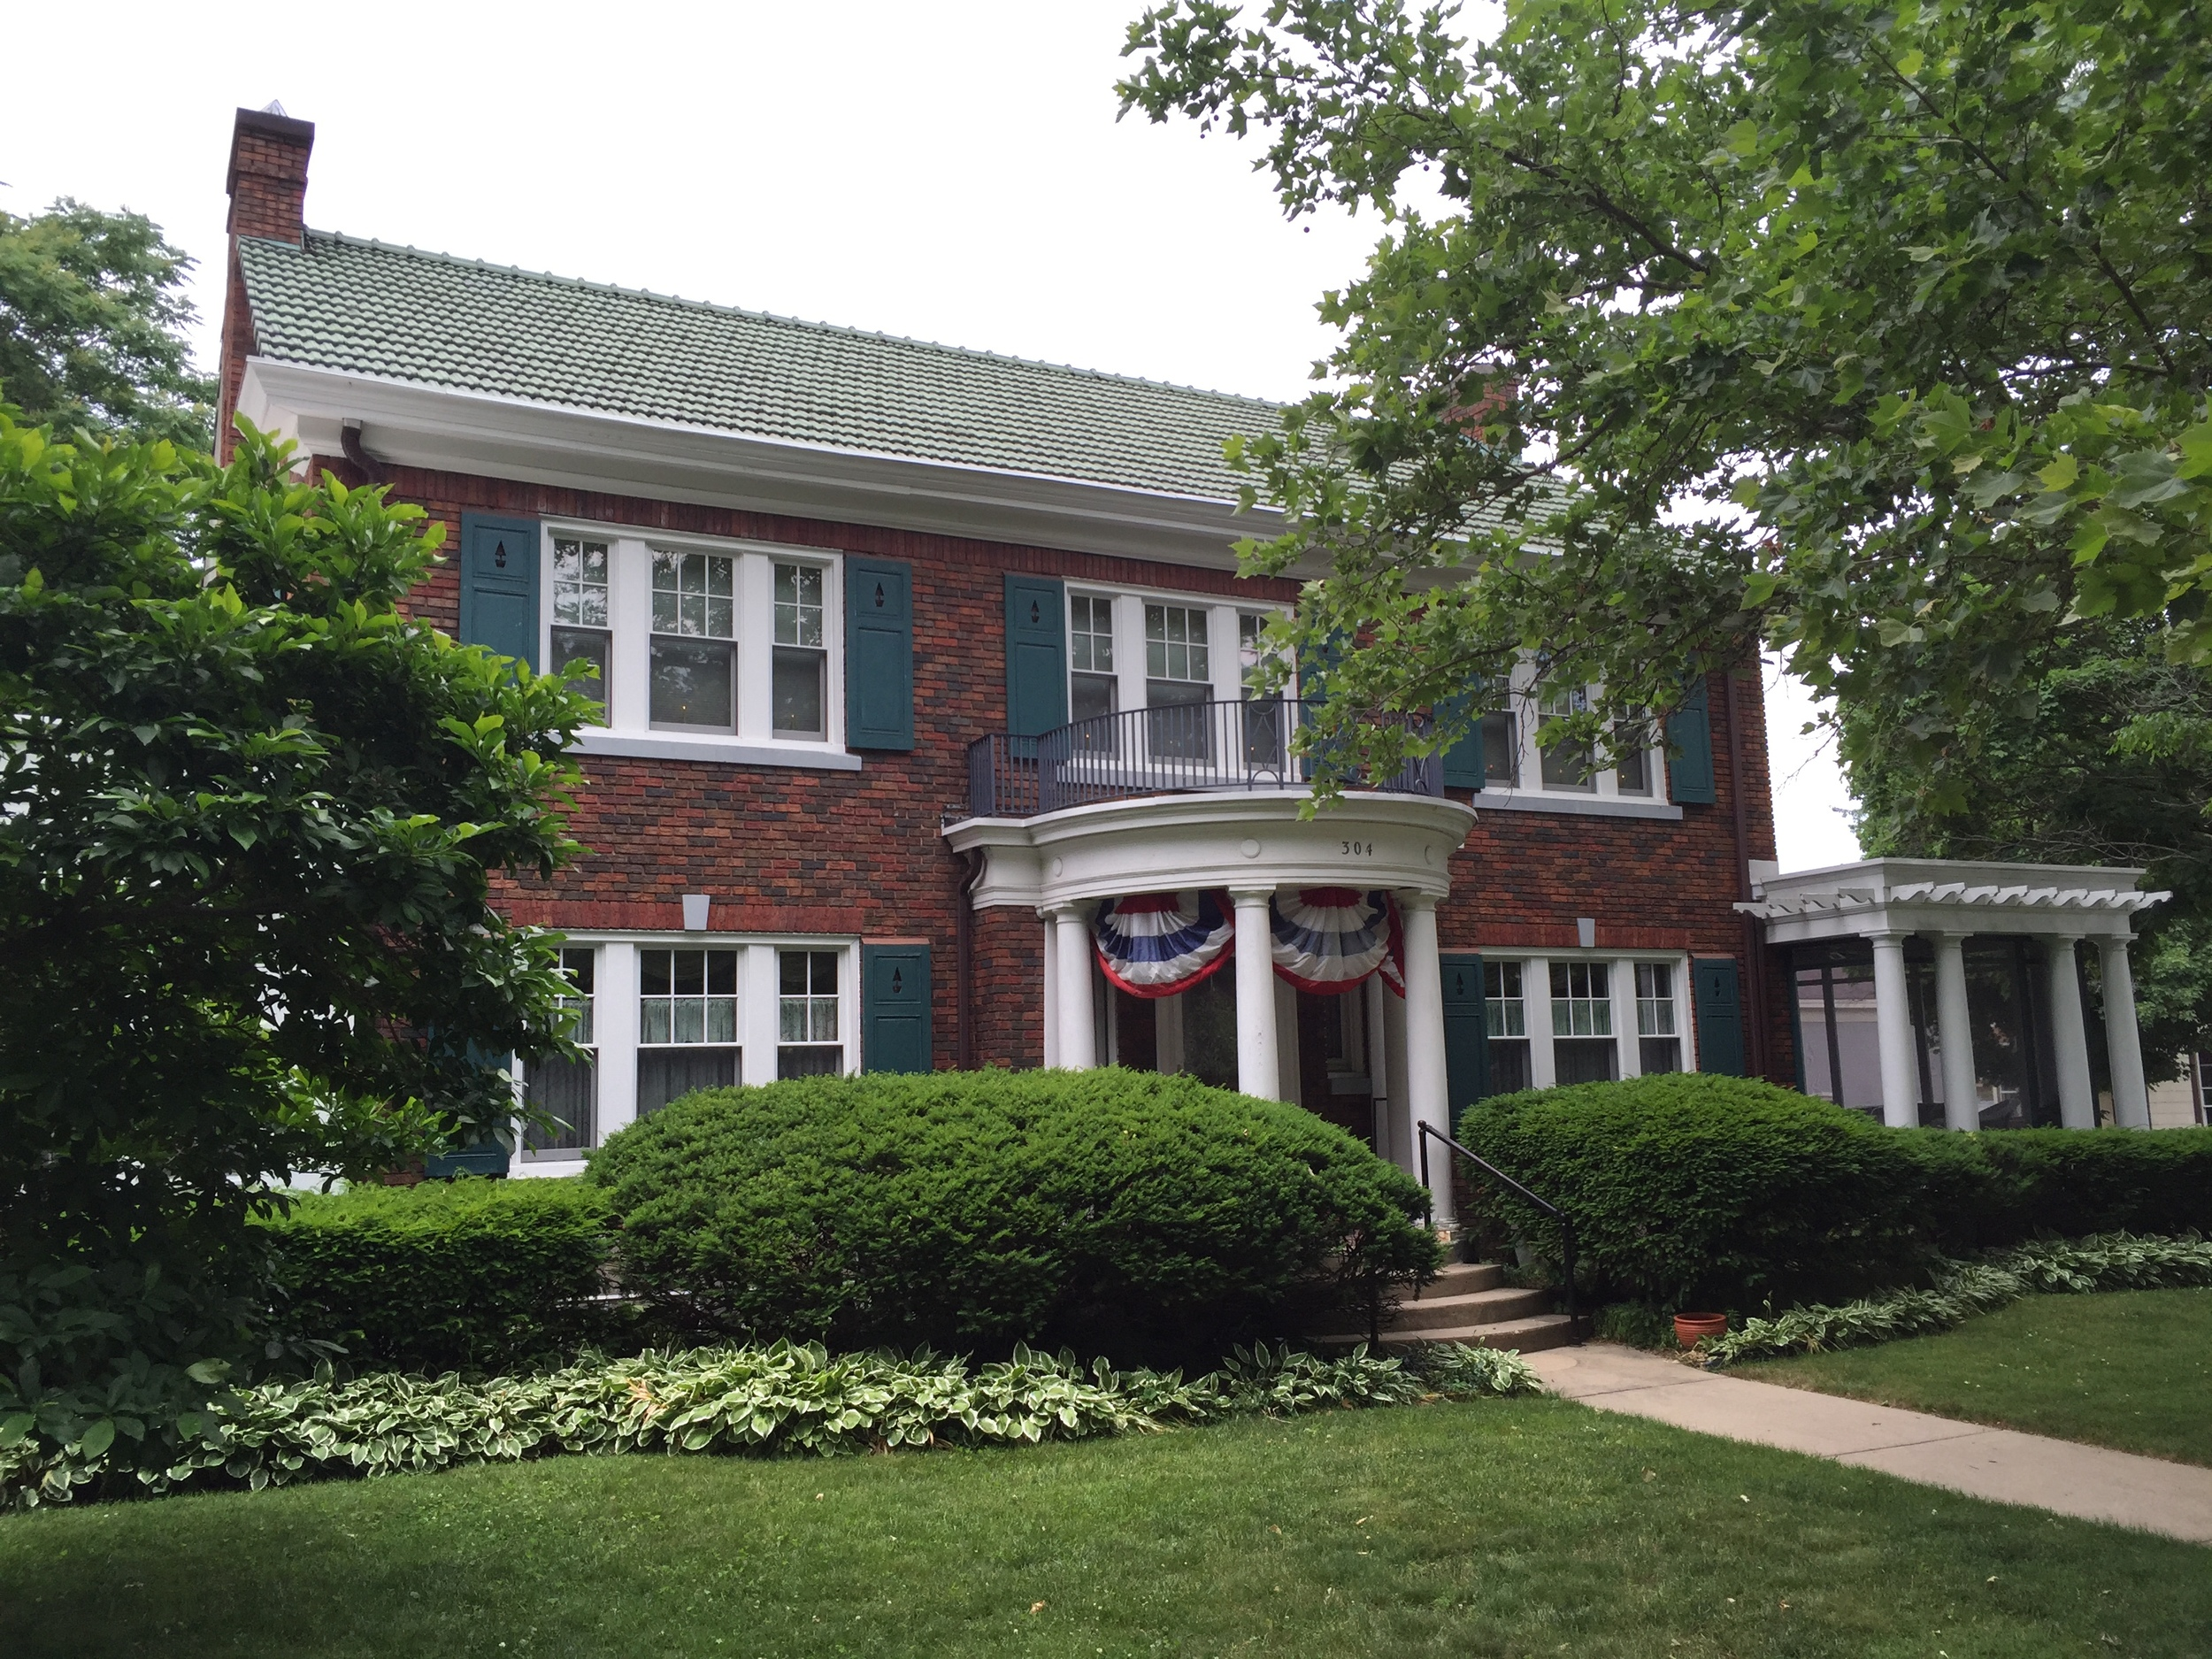 Georgian Colonial, Mott House, 304 State Street, 1925, by Toledo architect Harry Wachter    Click here for an essay about this home by Nicole Morley